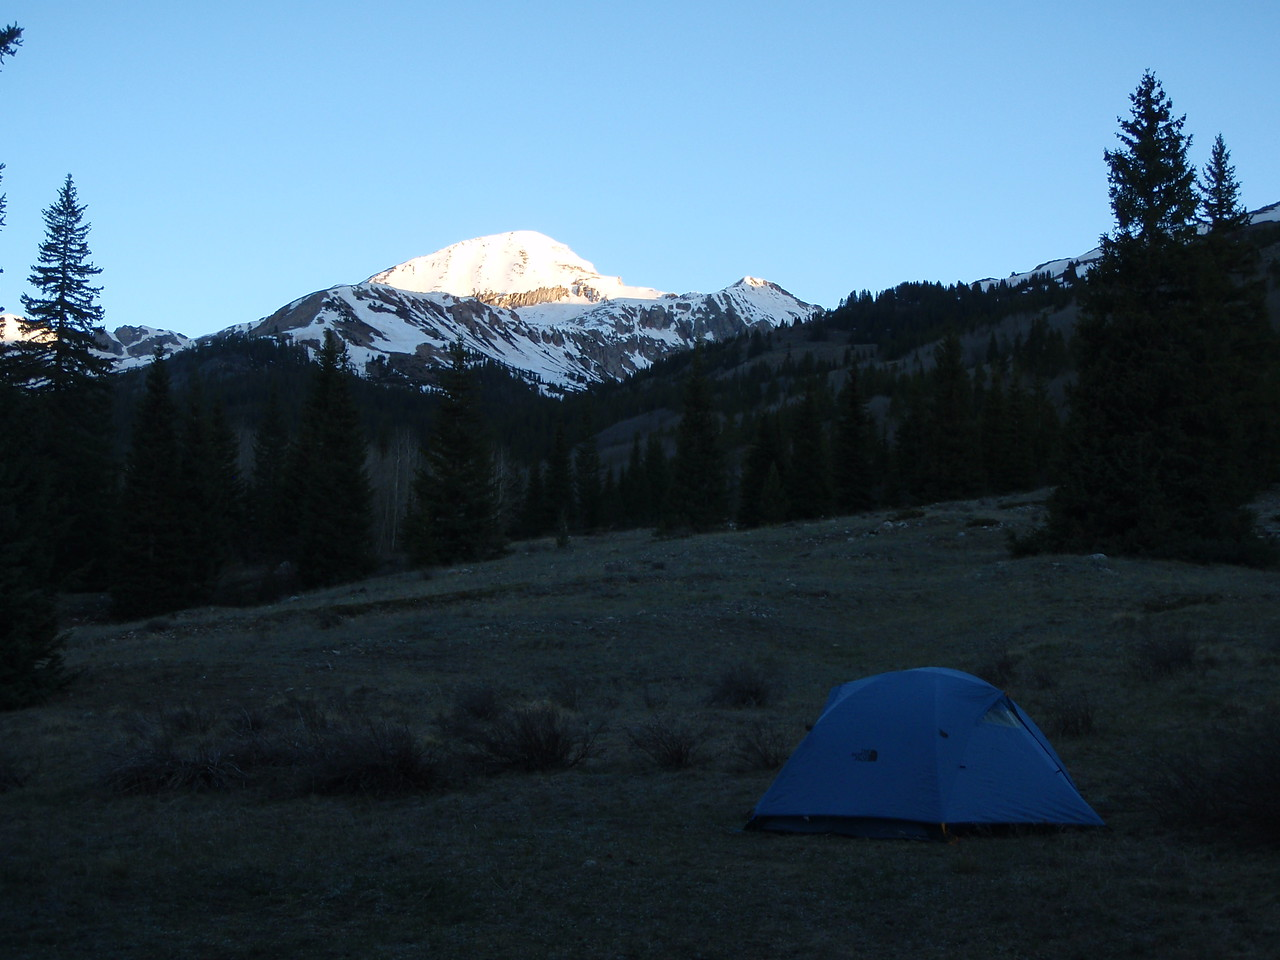 Morning the day after rafting. About to hike a 14er - La Plata Peak.